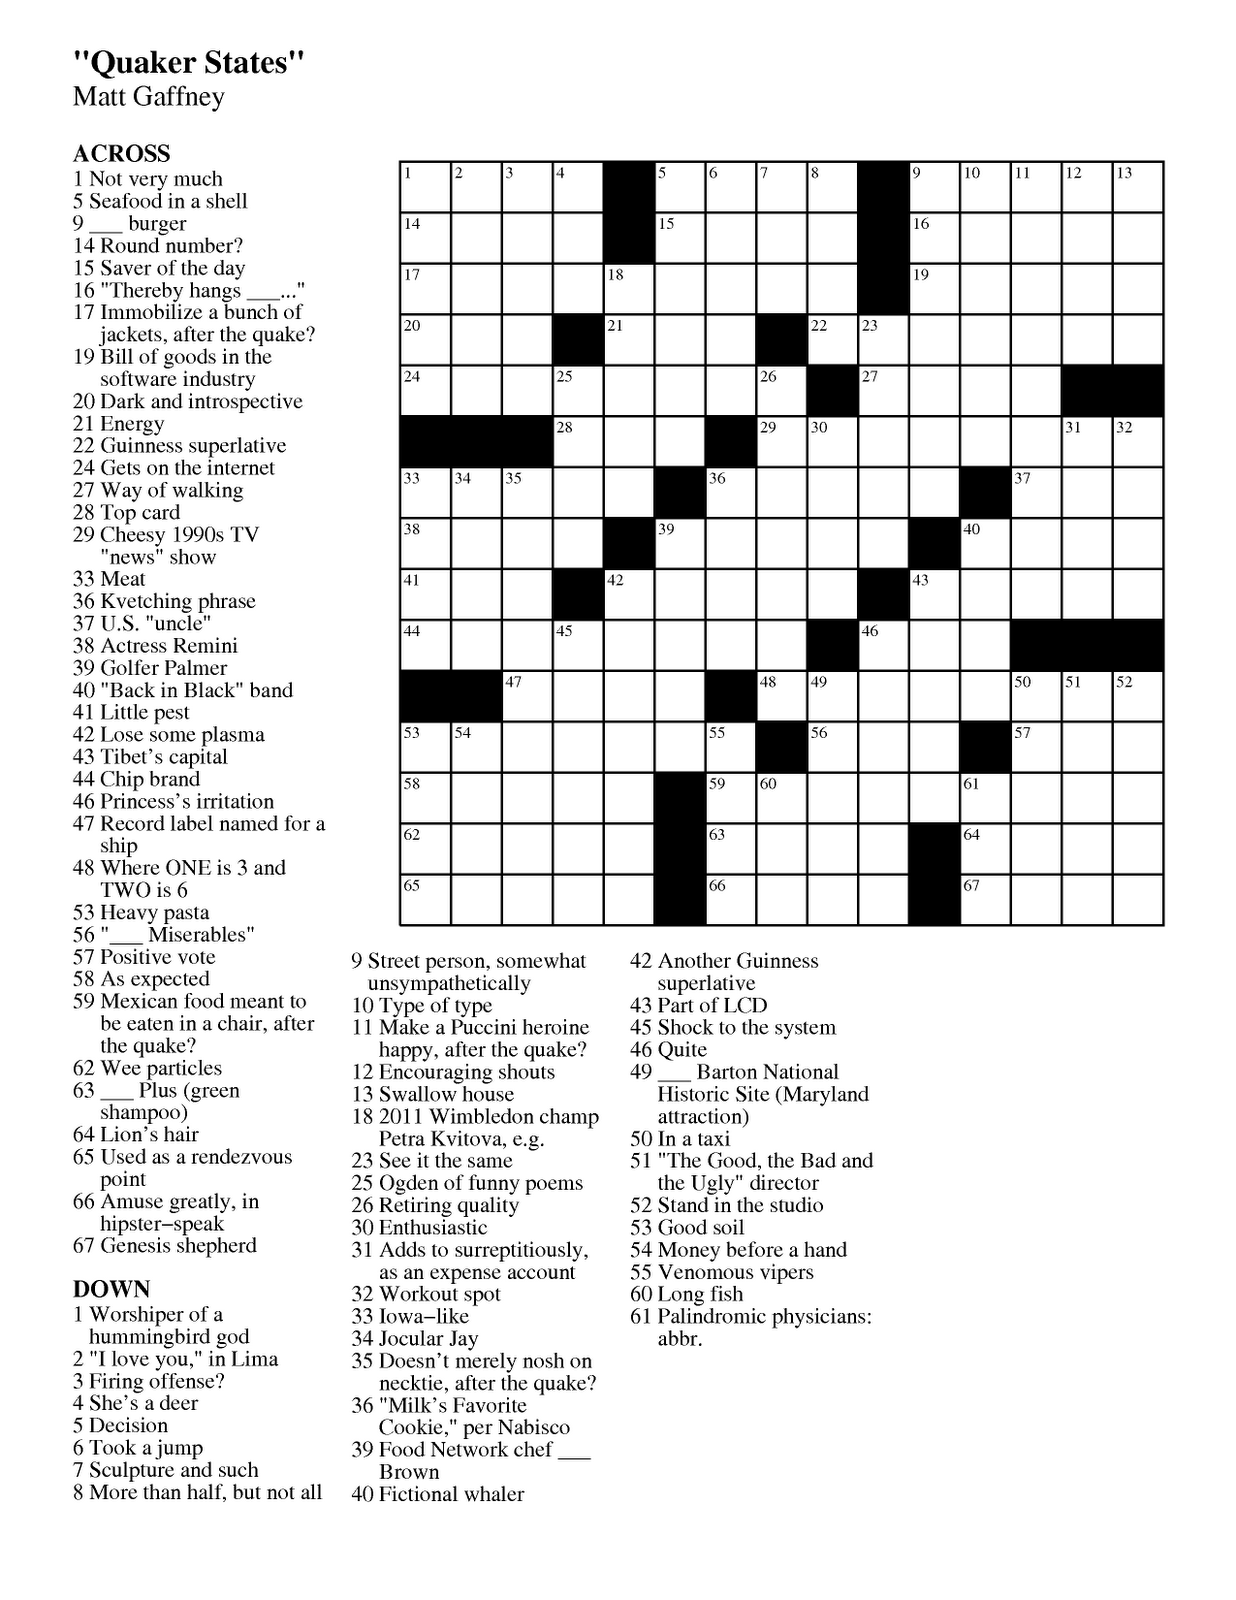 Free Printable Themed Crossword Puzzles For Adults